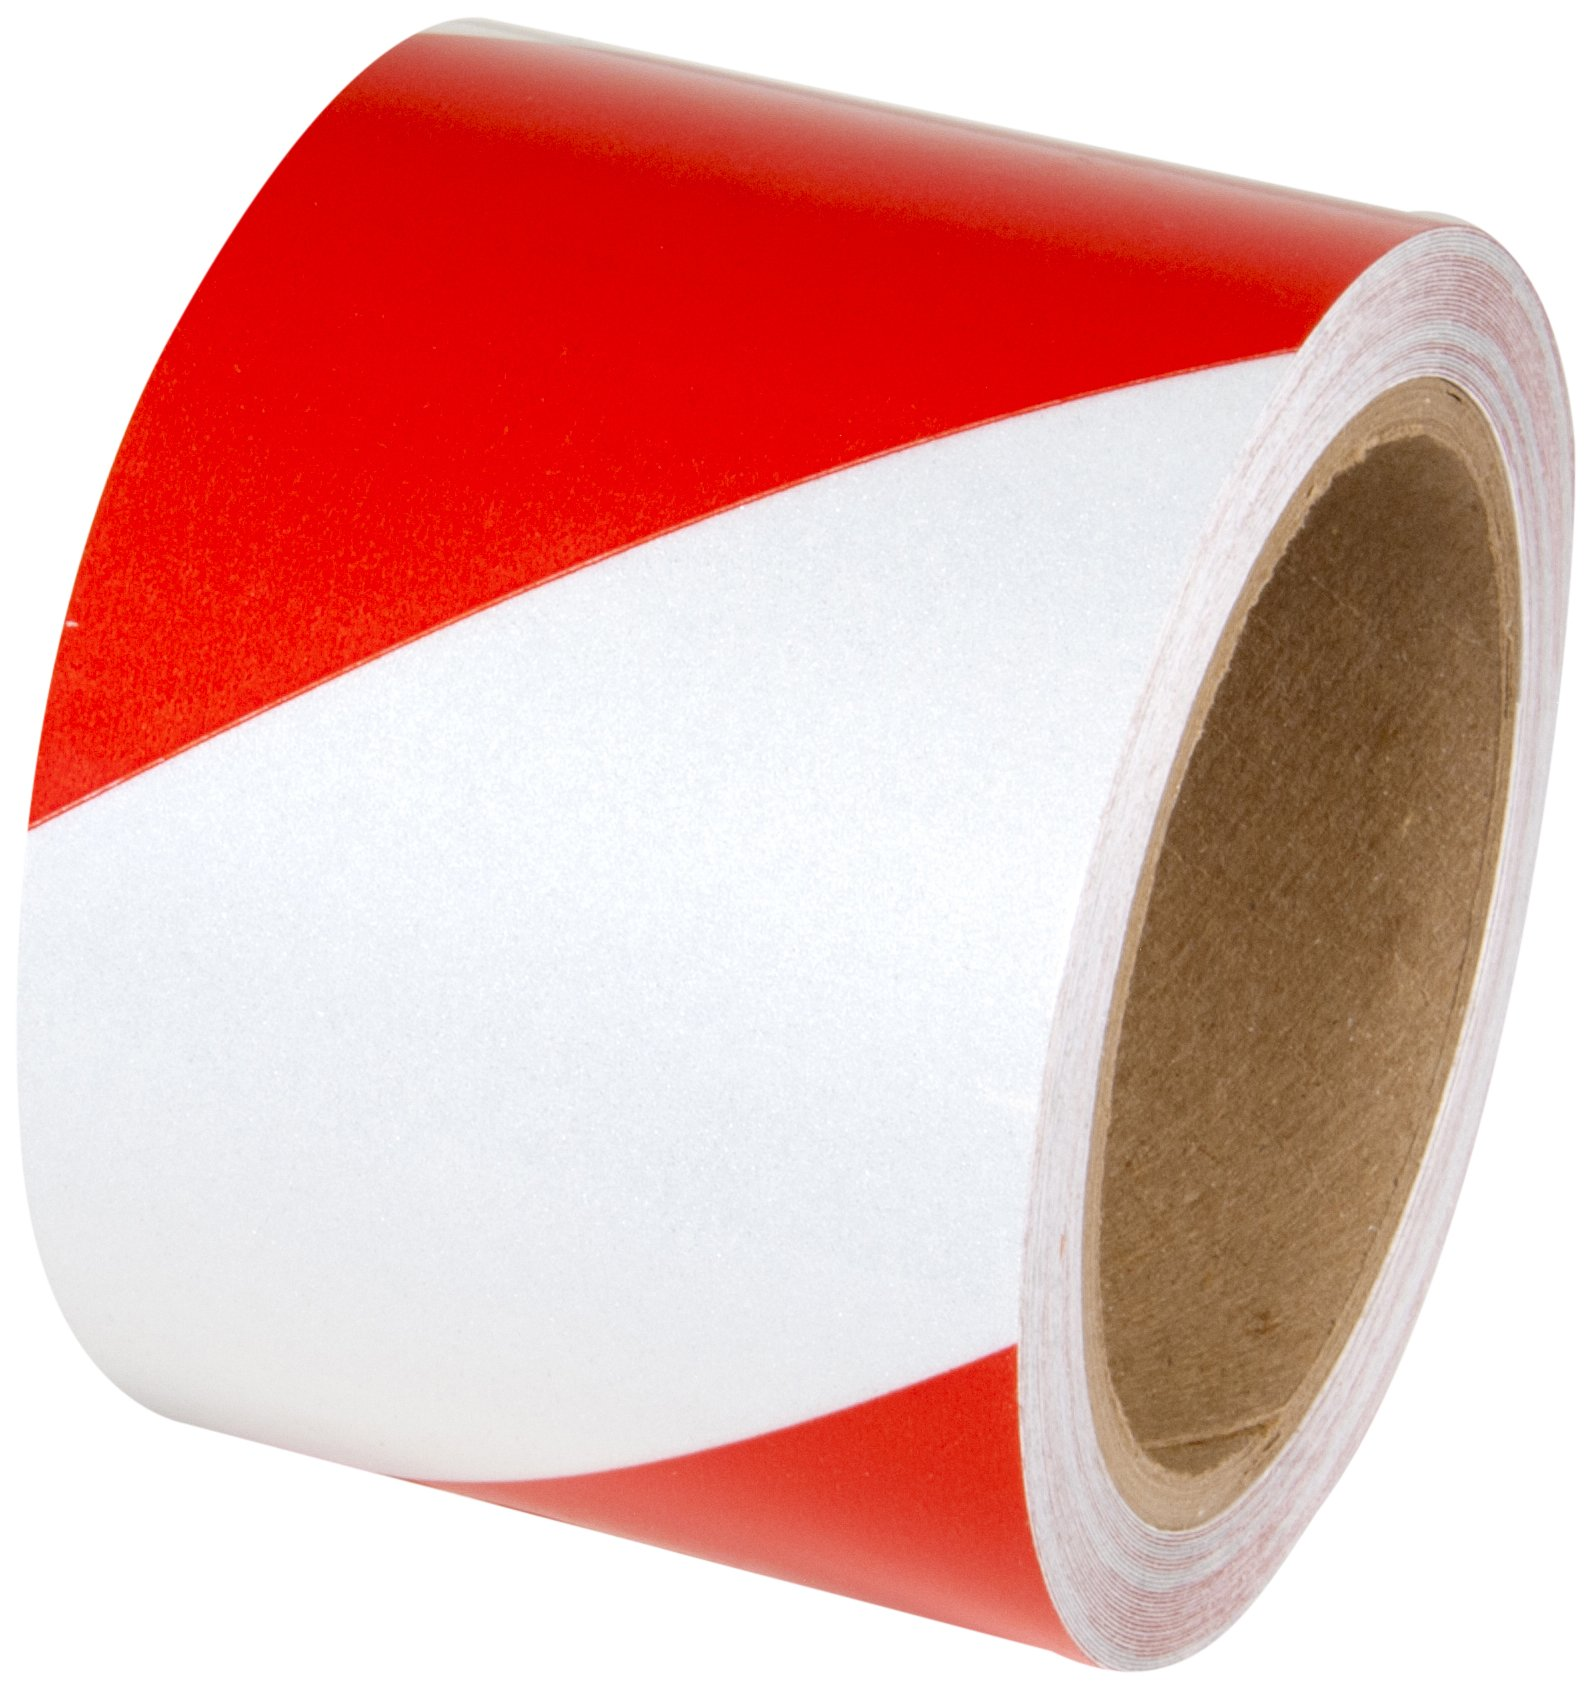 INCOM Manufacturing: Engineer Grade Reflective Safety Tape, 4'' x 30', Red/White